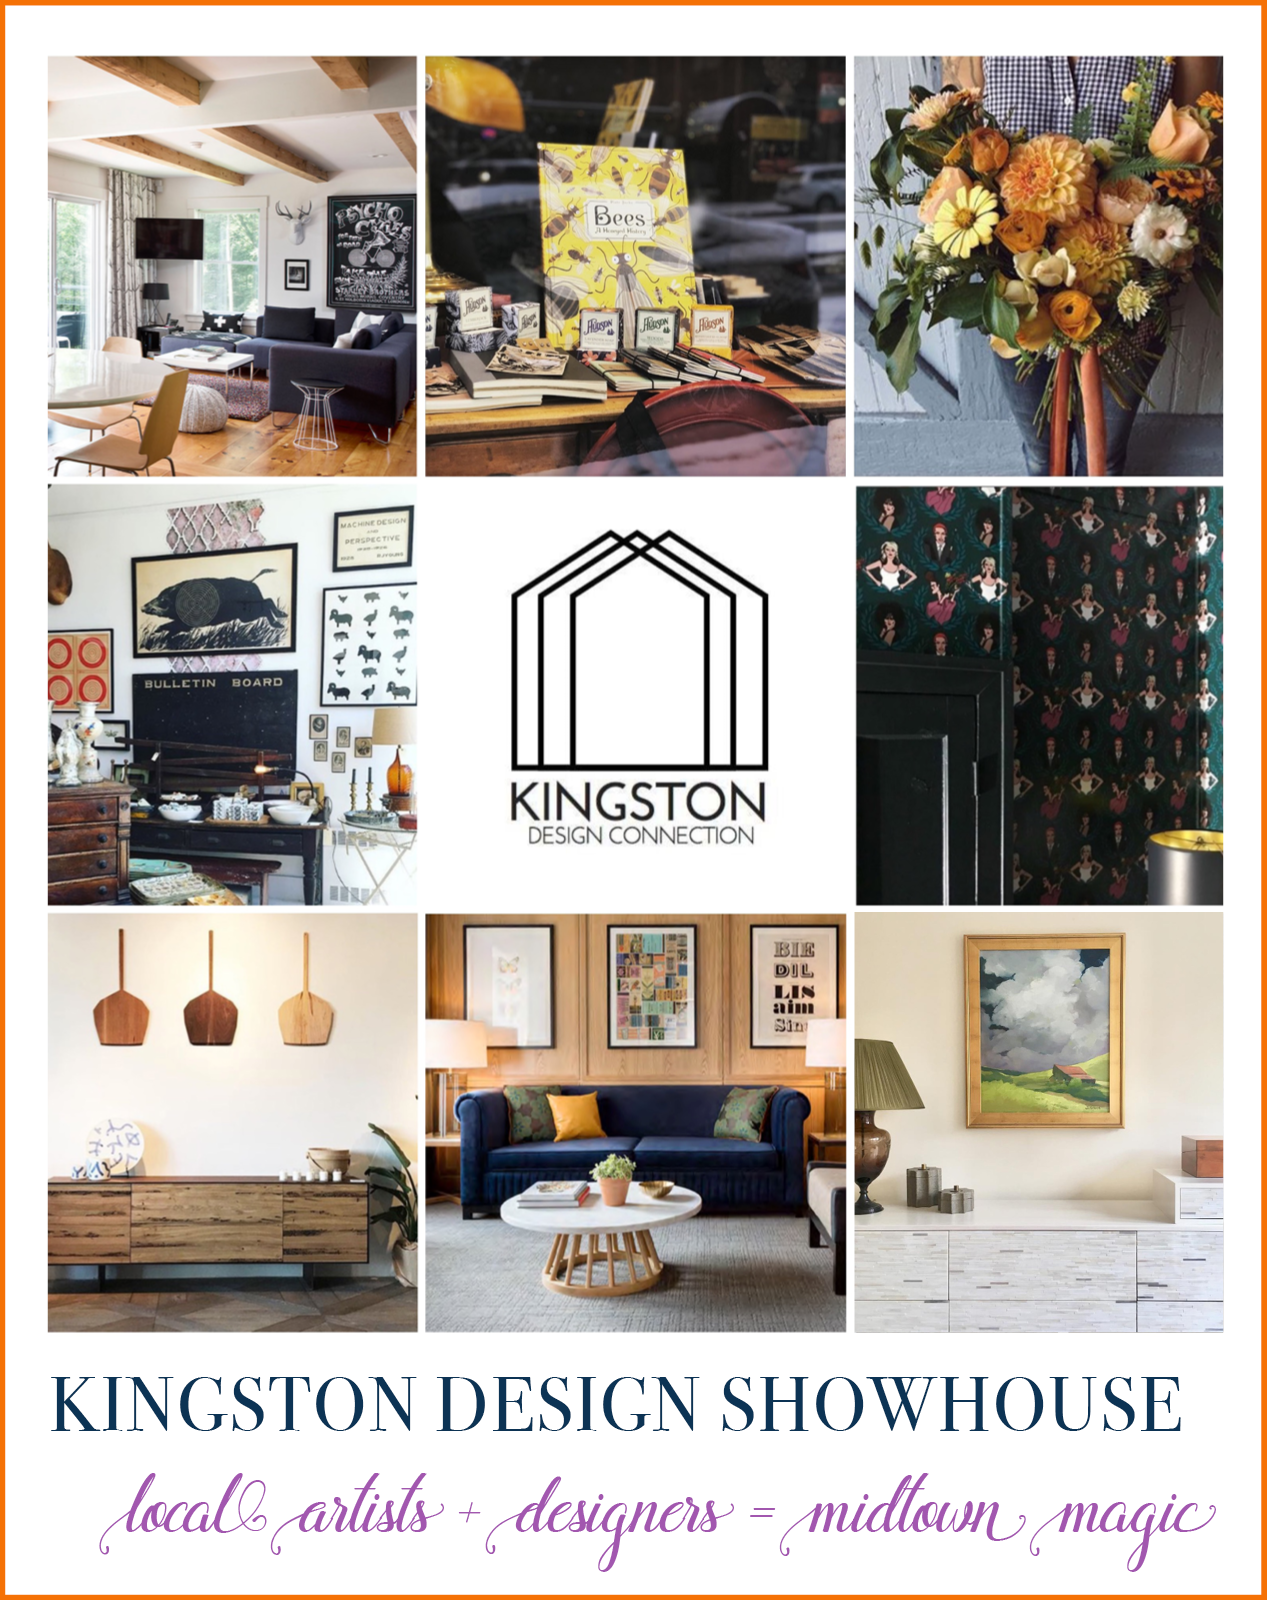 The Kingston Design Connection | A Design Showhouse in Kingston NY photo